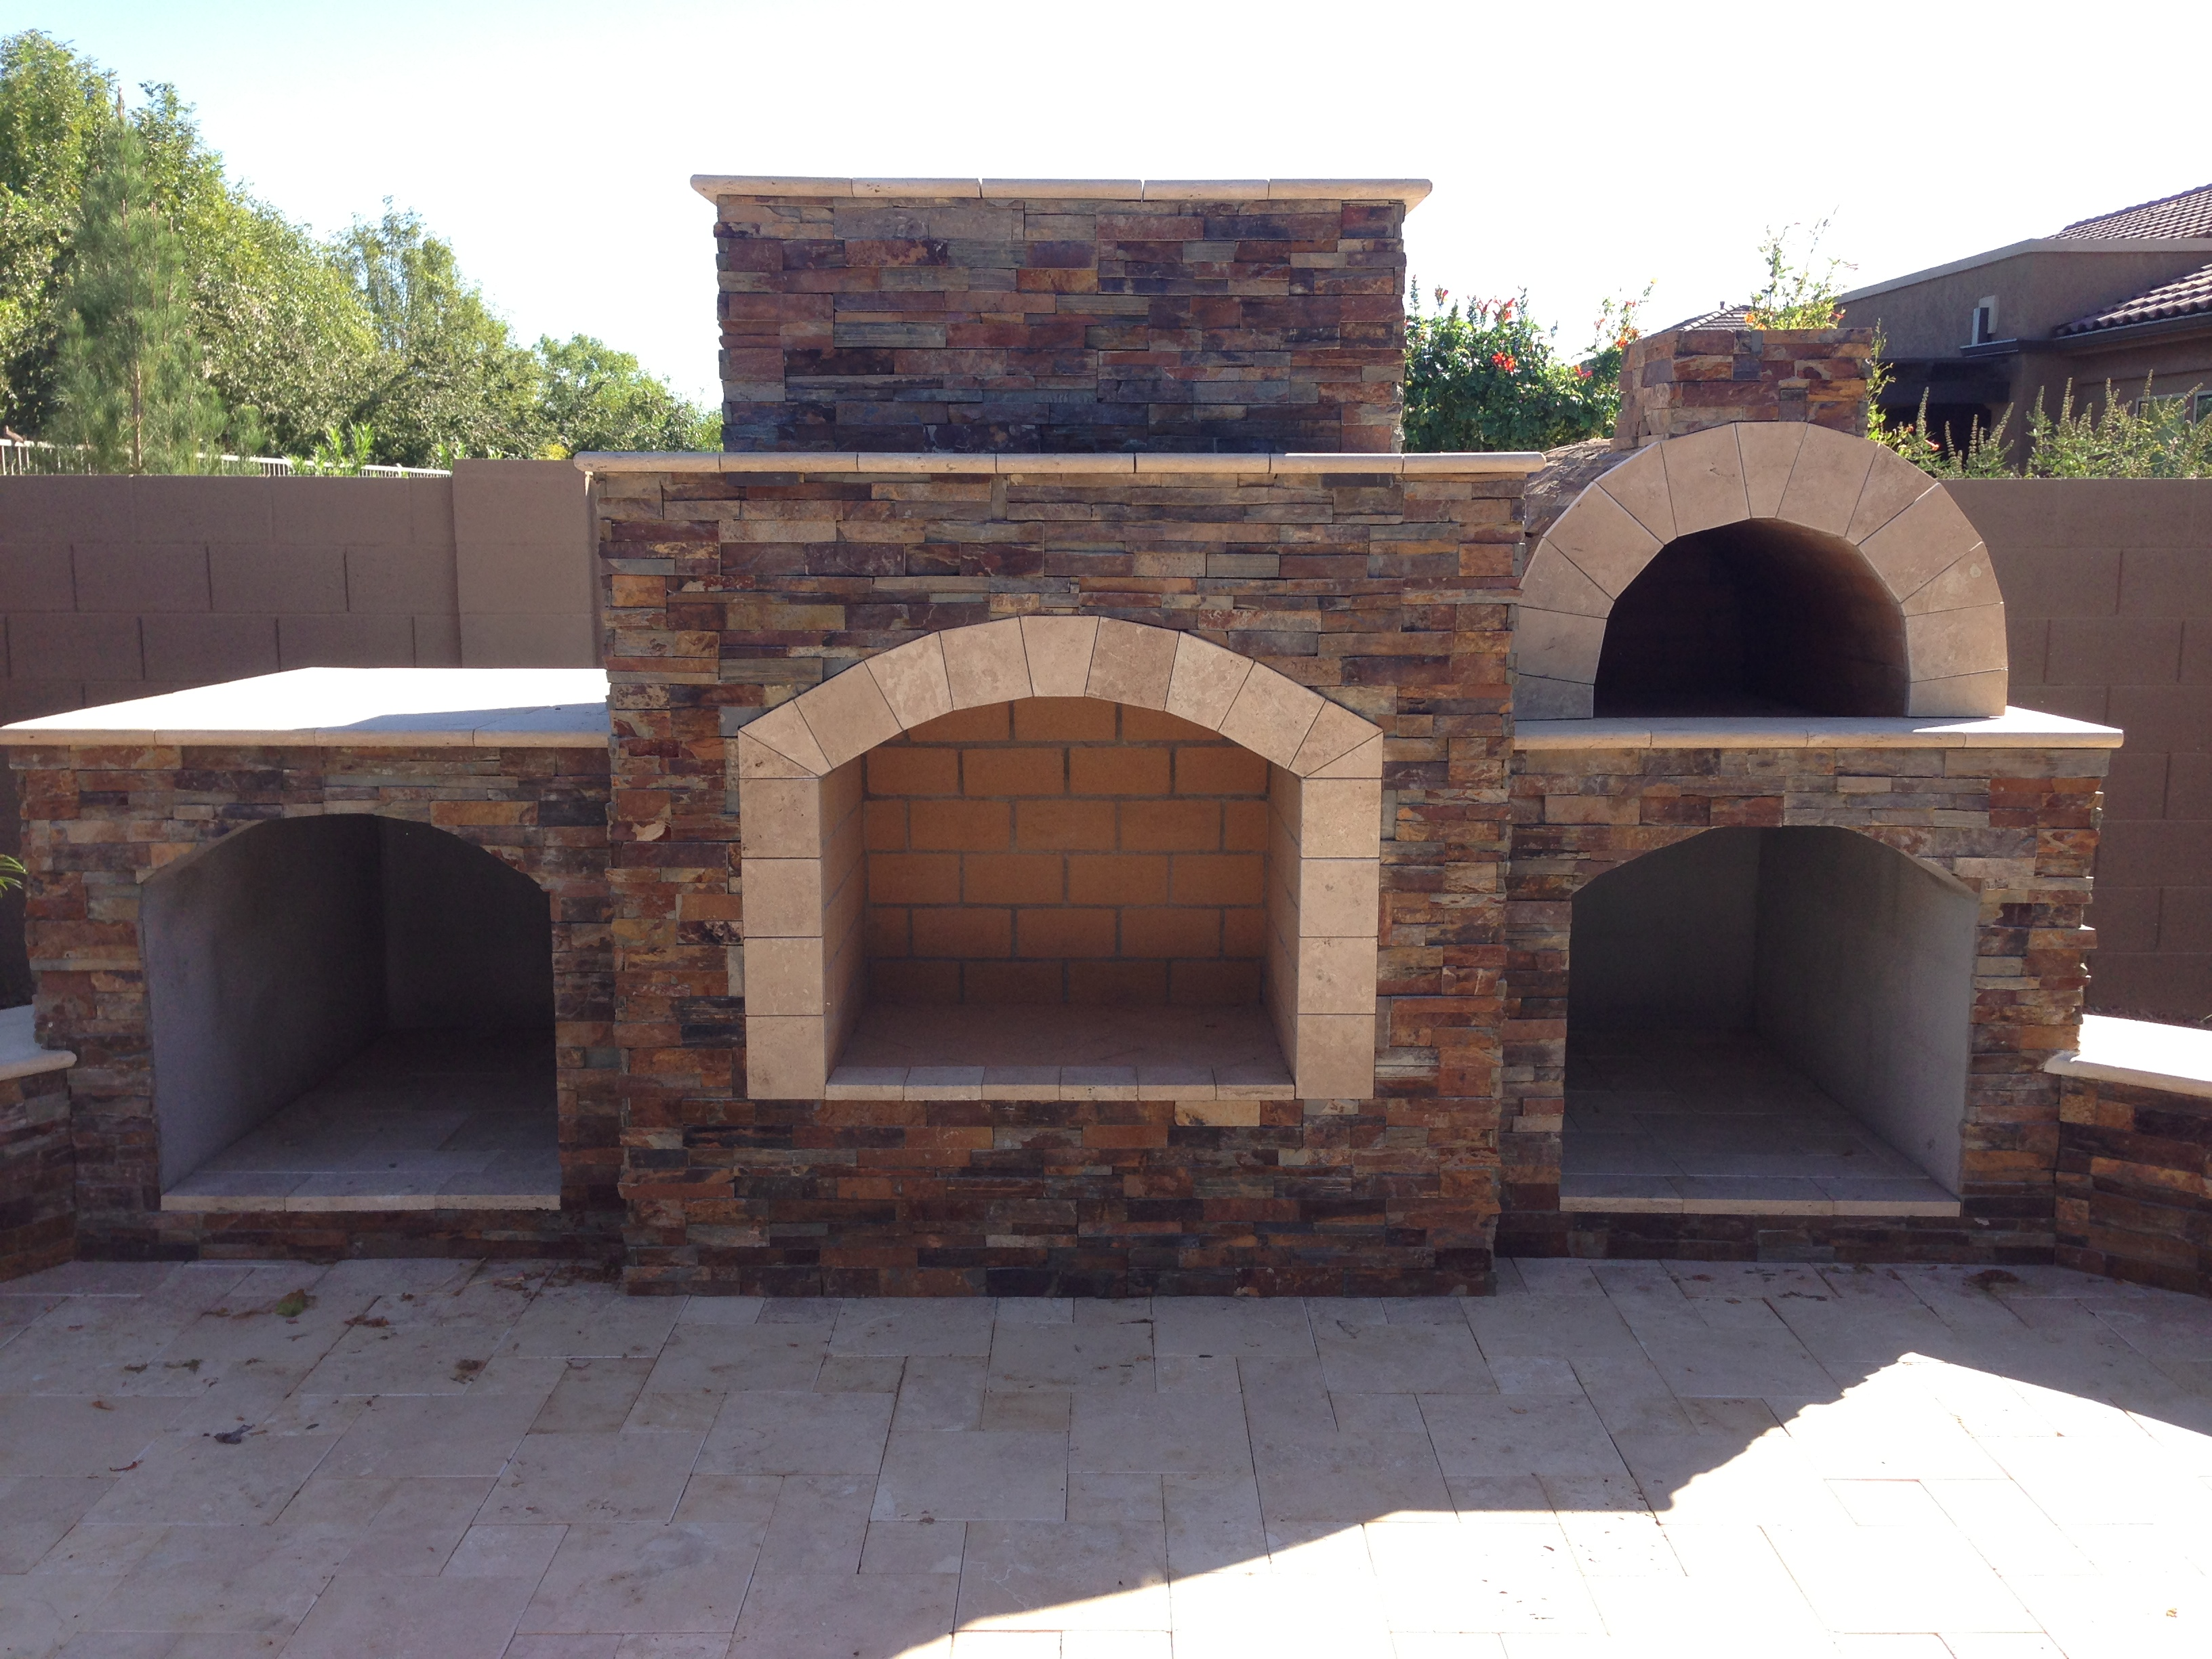 beautiful of oven hypermallapartments freestanding stone fireplace outdoor color brick google search and designs pizza